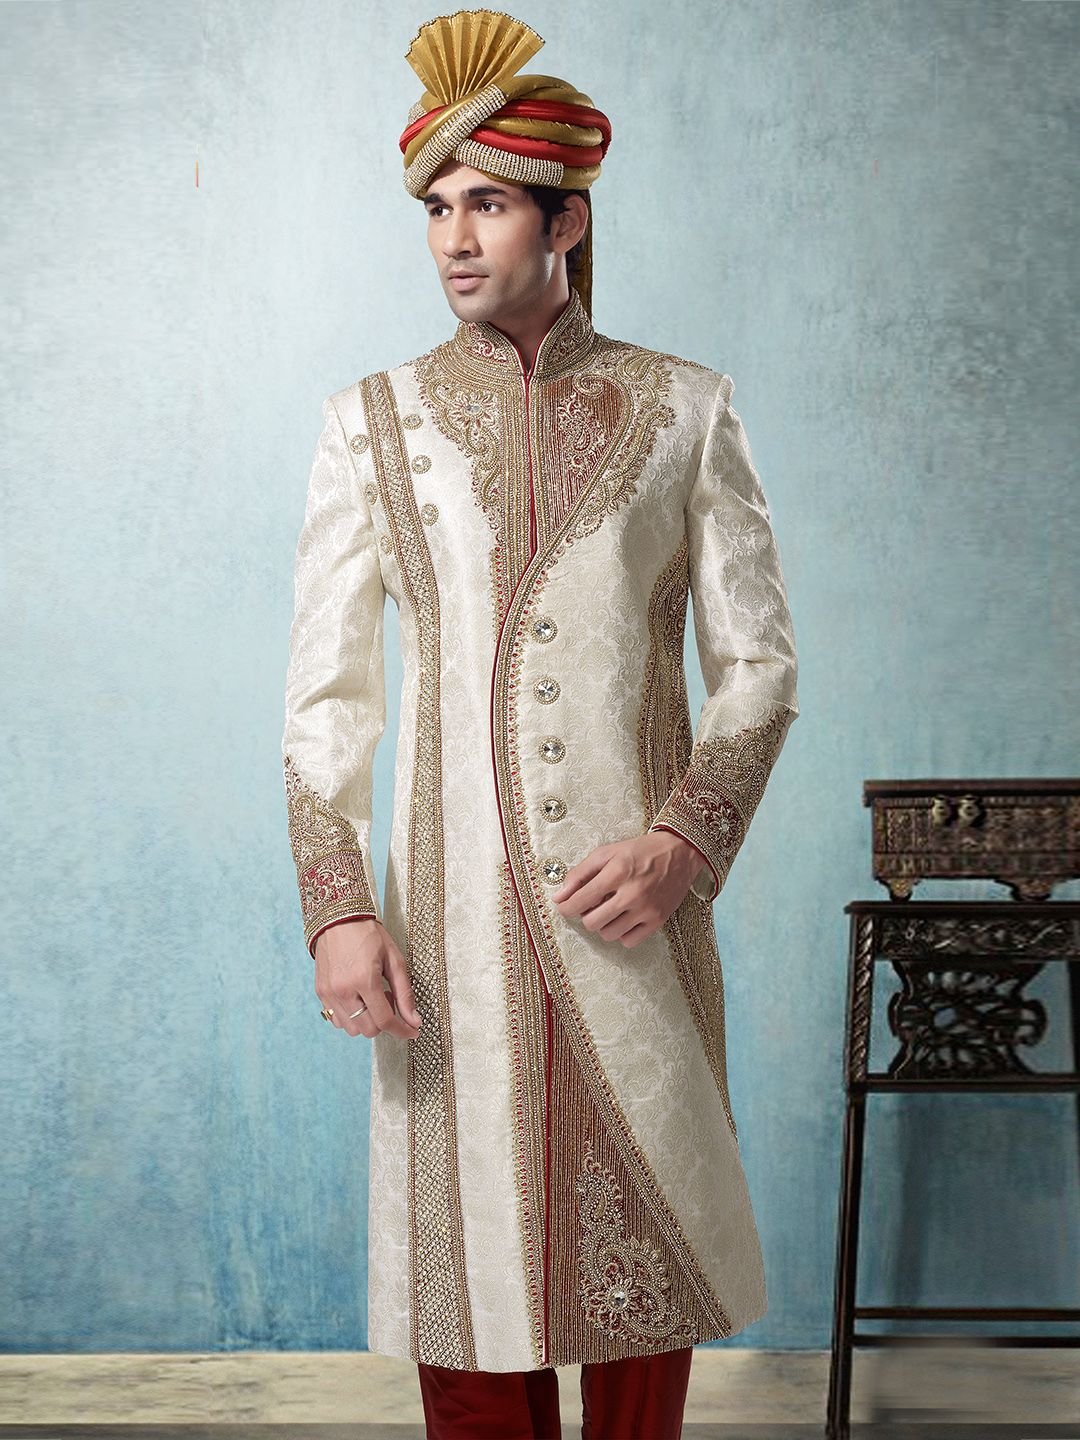 Beautiful Indian Wedding Outfit For Men Images - Wedding Ideas ...